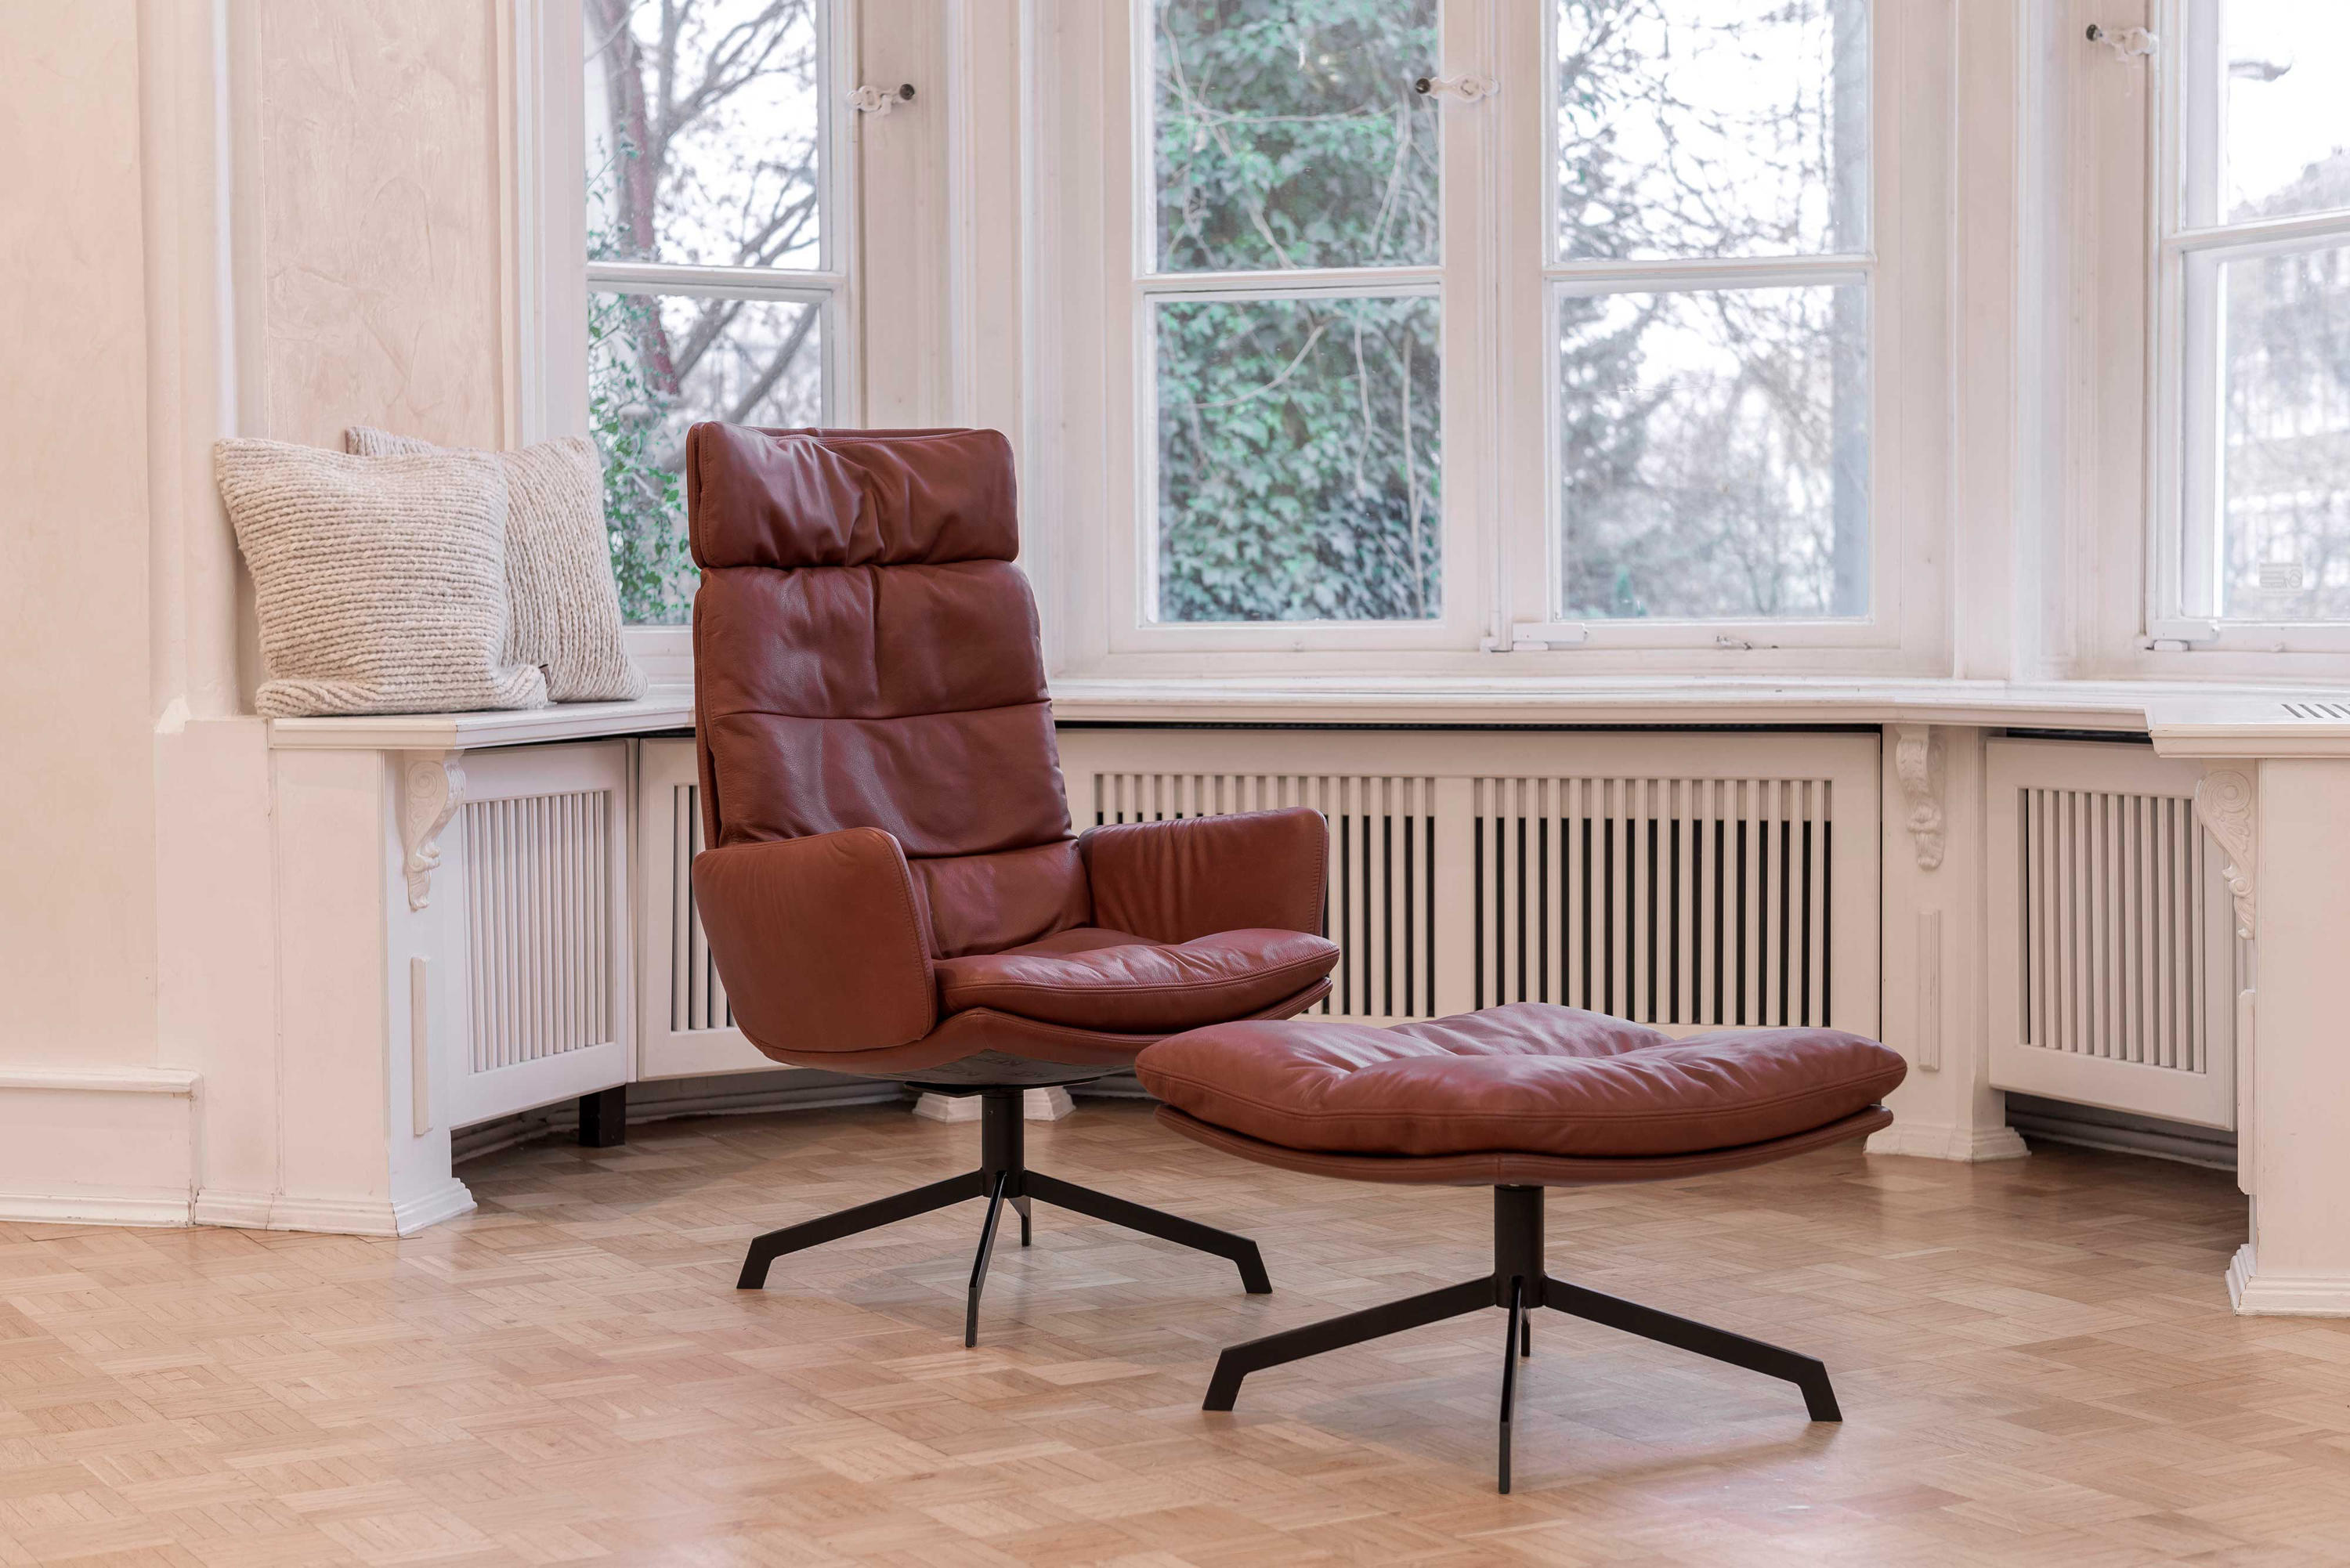 Arva Lounge Lounge Chairs From Kff Architonic